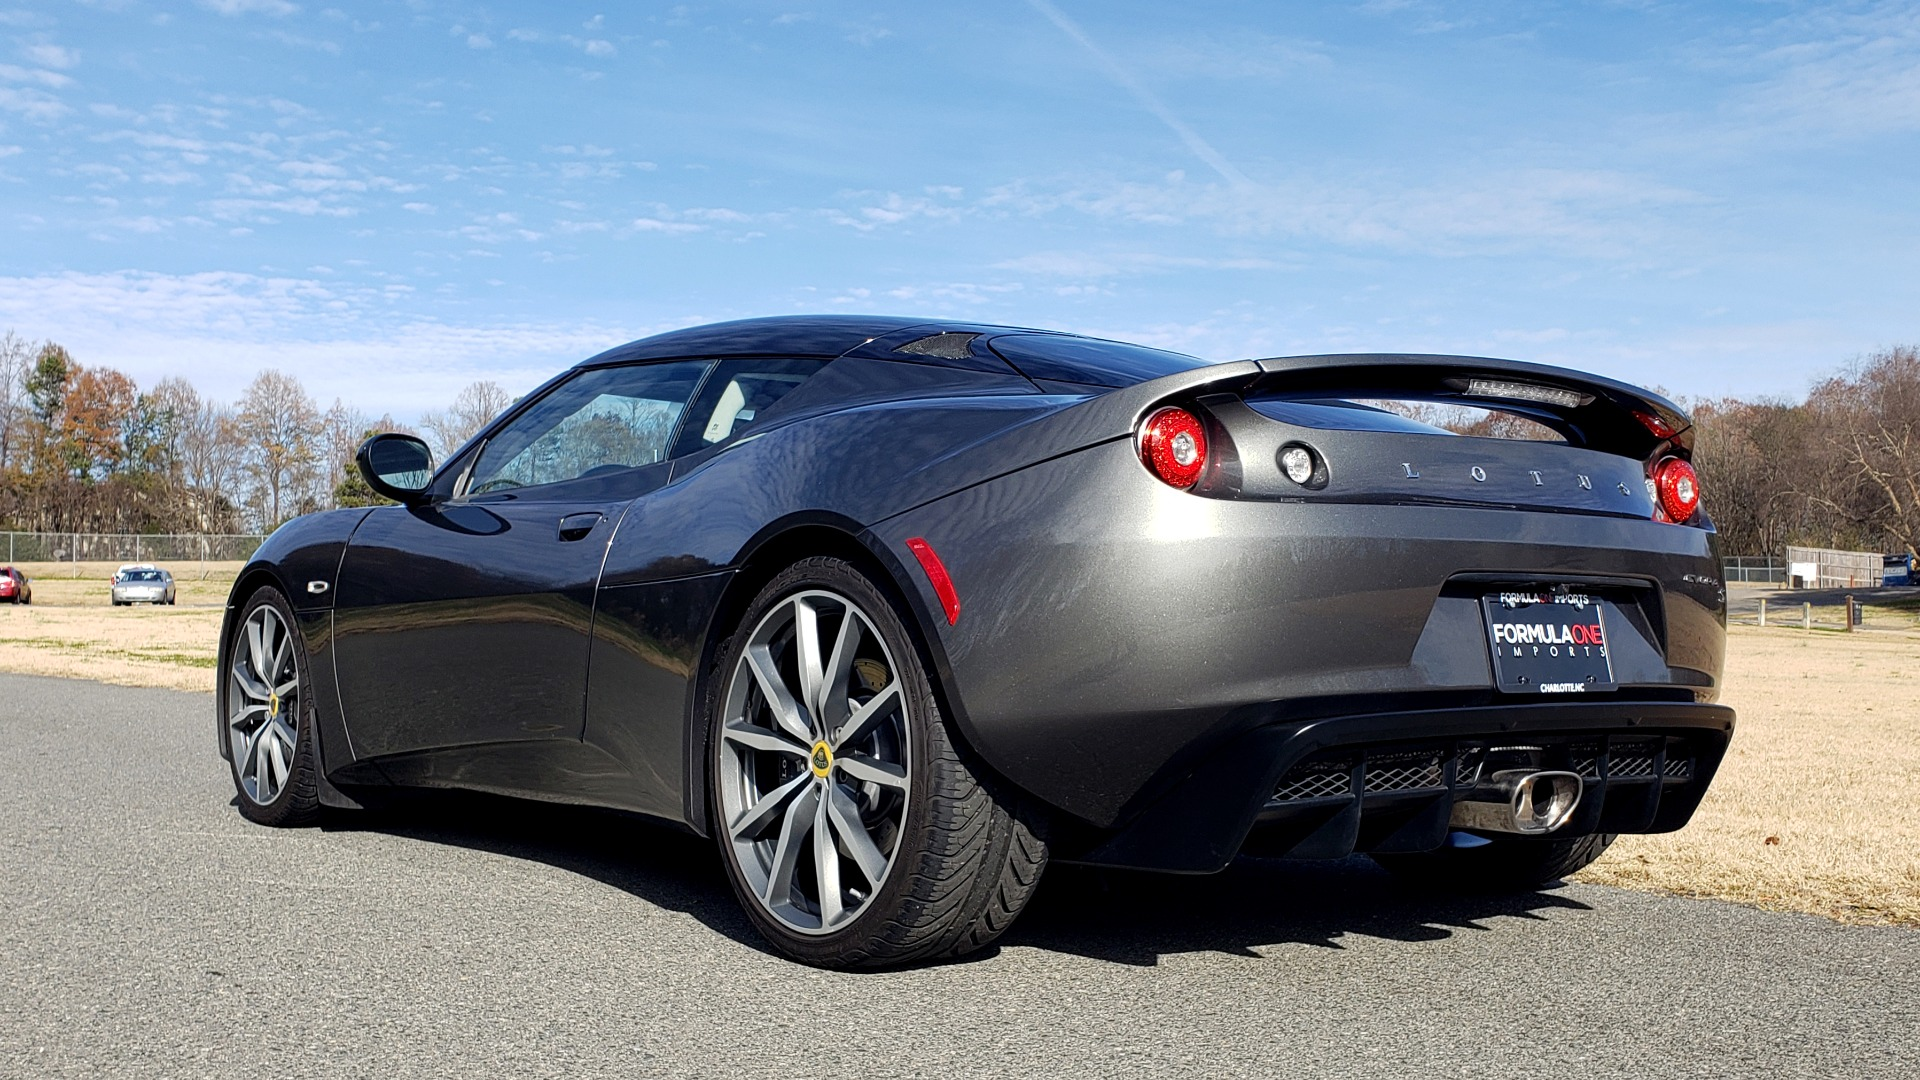 Used 2011 Lotus EVORA S 2+2 / 3.5L V6 / 6-SPD MANUAL / PIONEER / REARVIEW / LOW MILES for sale Sold at Formula Imports in Charlotte NC 28227 6